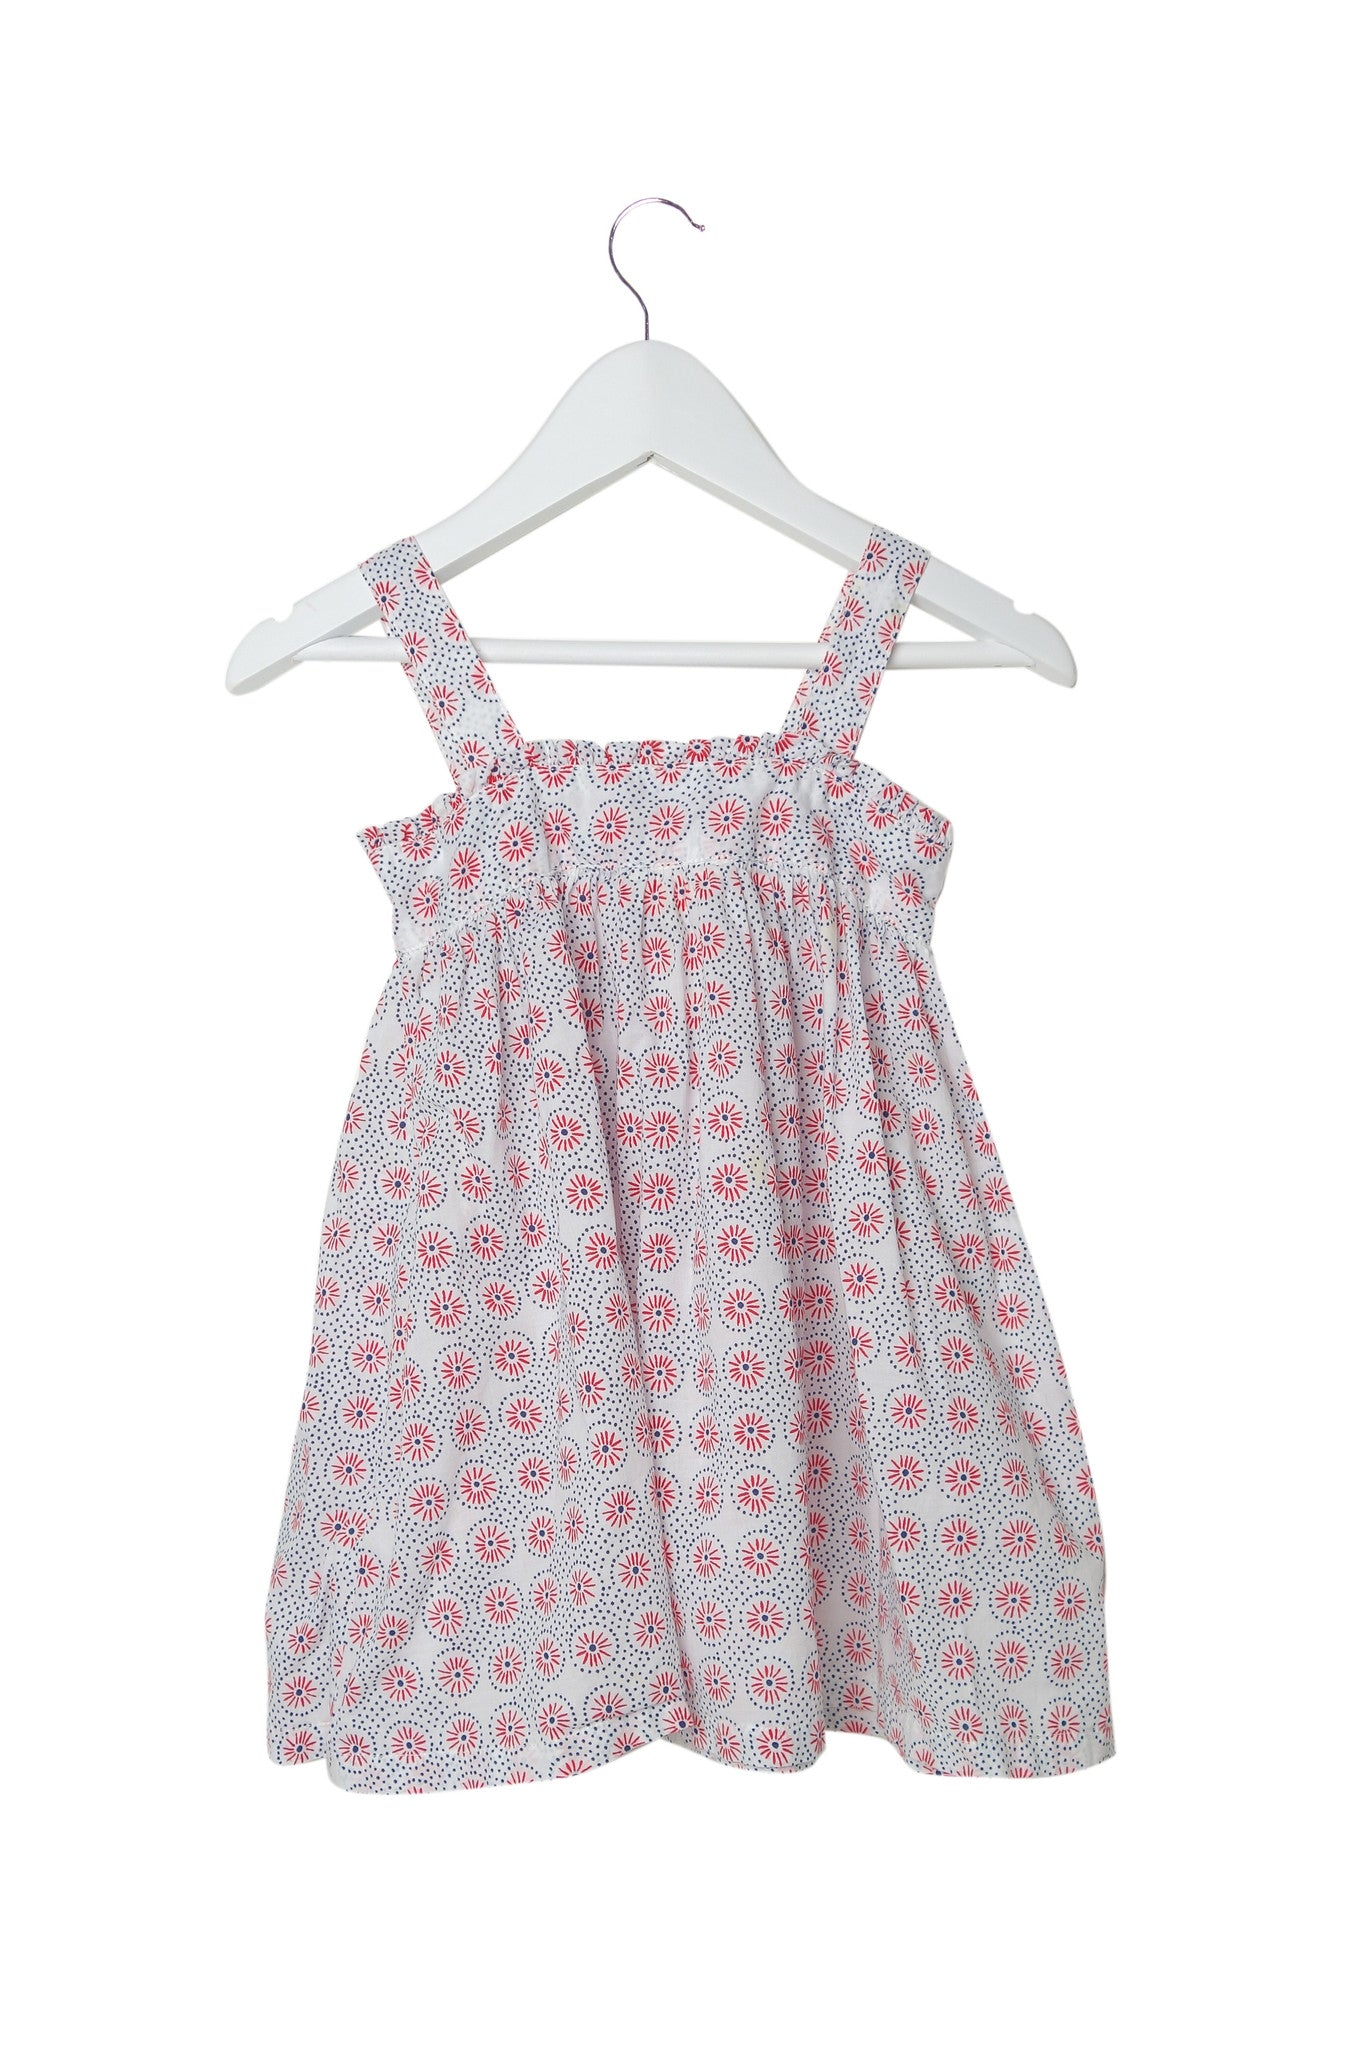 10002651 Seed Baby~Dress 1-2T at Retykle